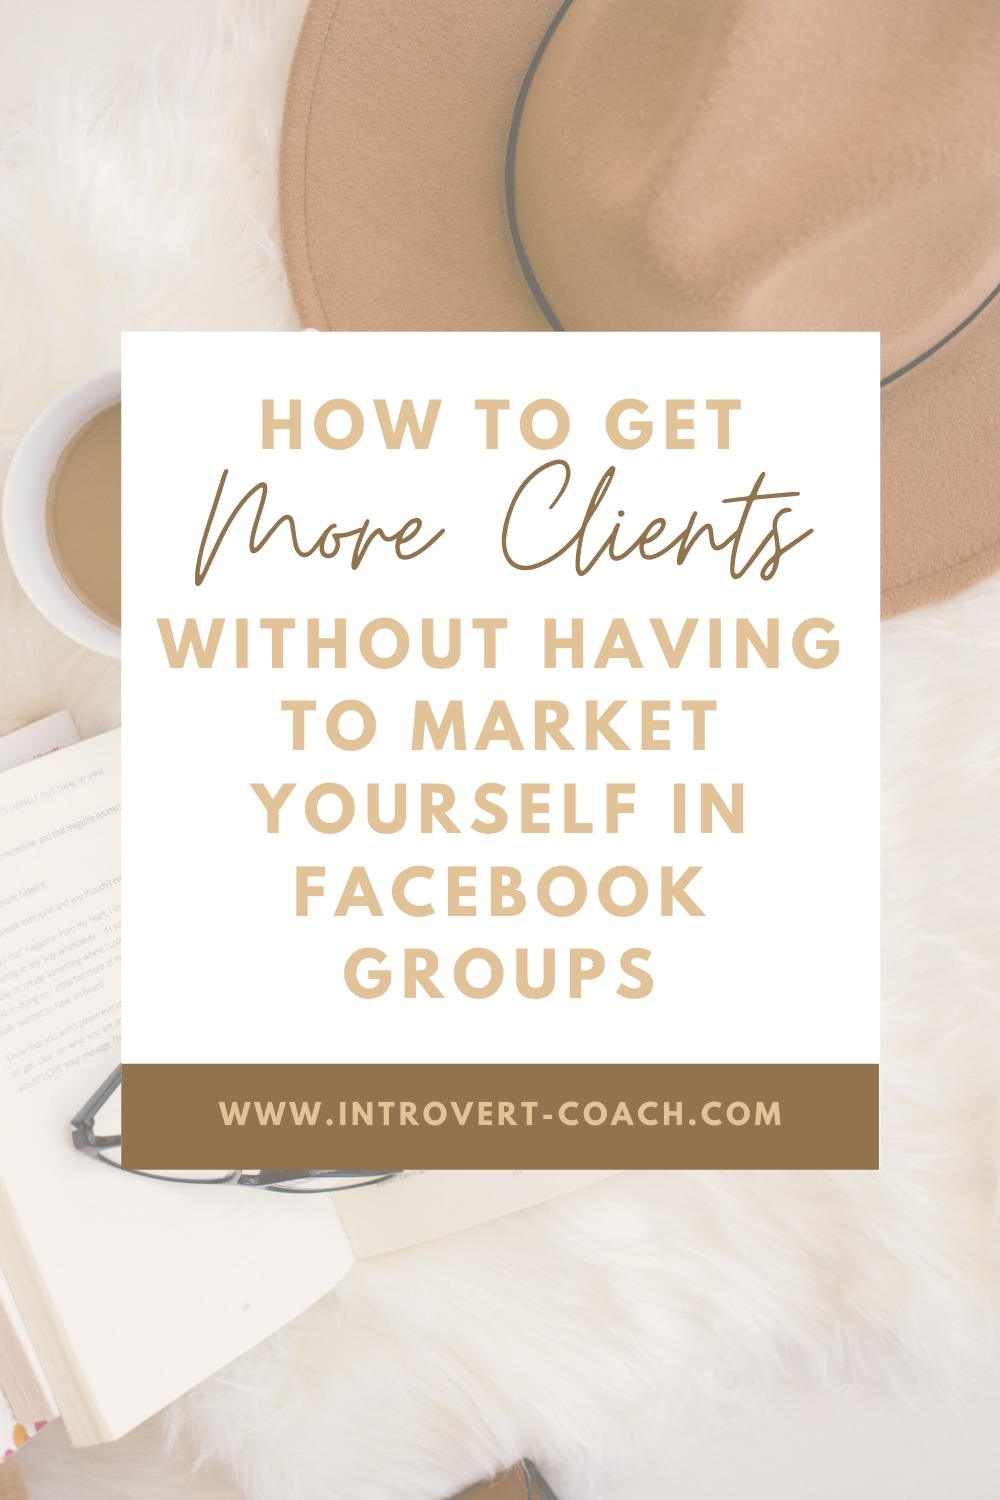 How to Get More Clients Without Having to Market Yourself in Facebook Groups